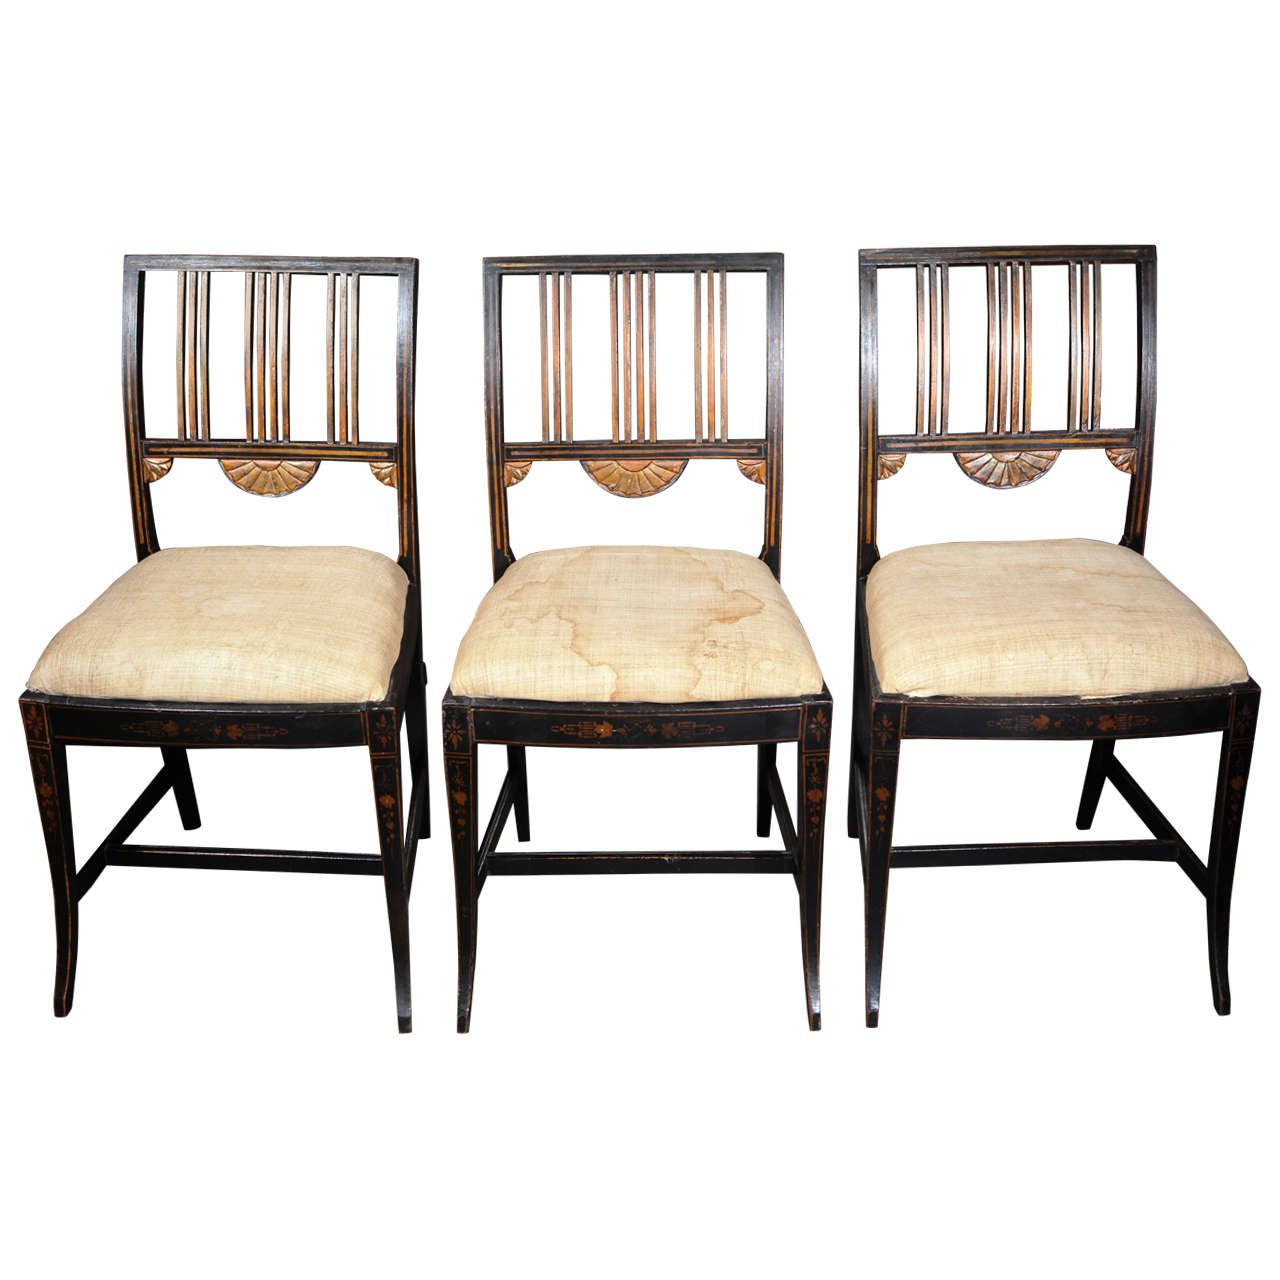 19th Century Set of Six Upholstered and Decorated Chairs